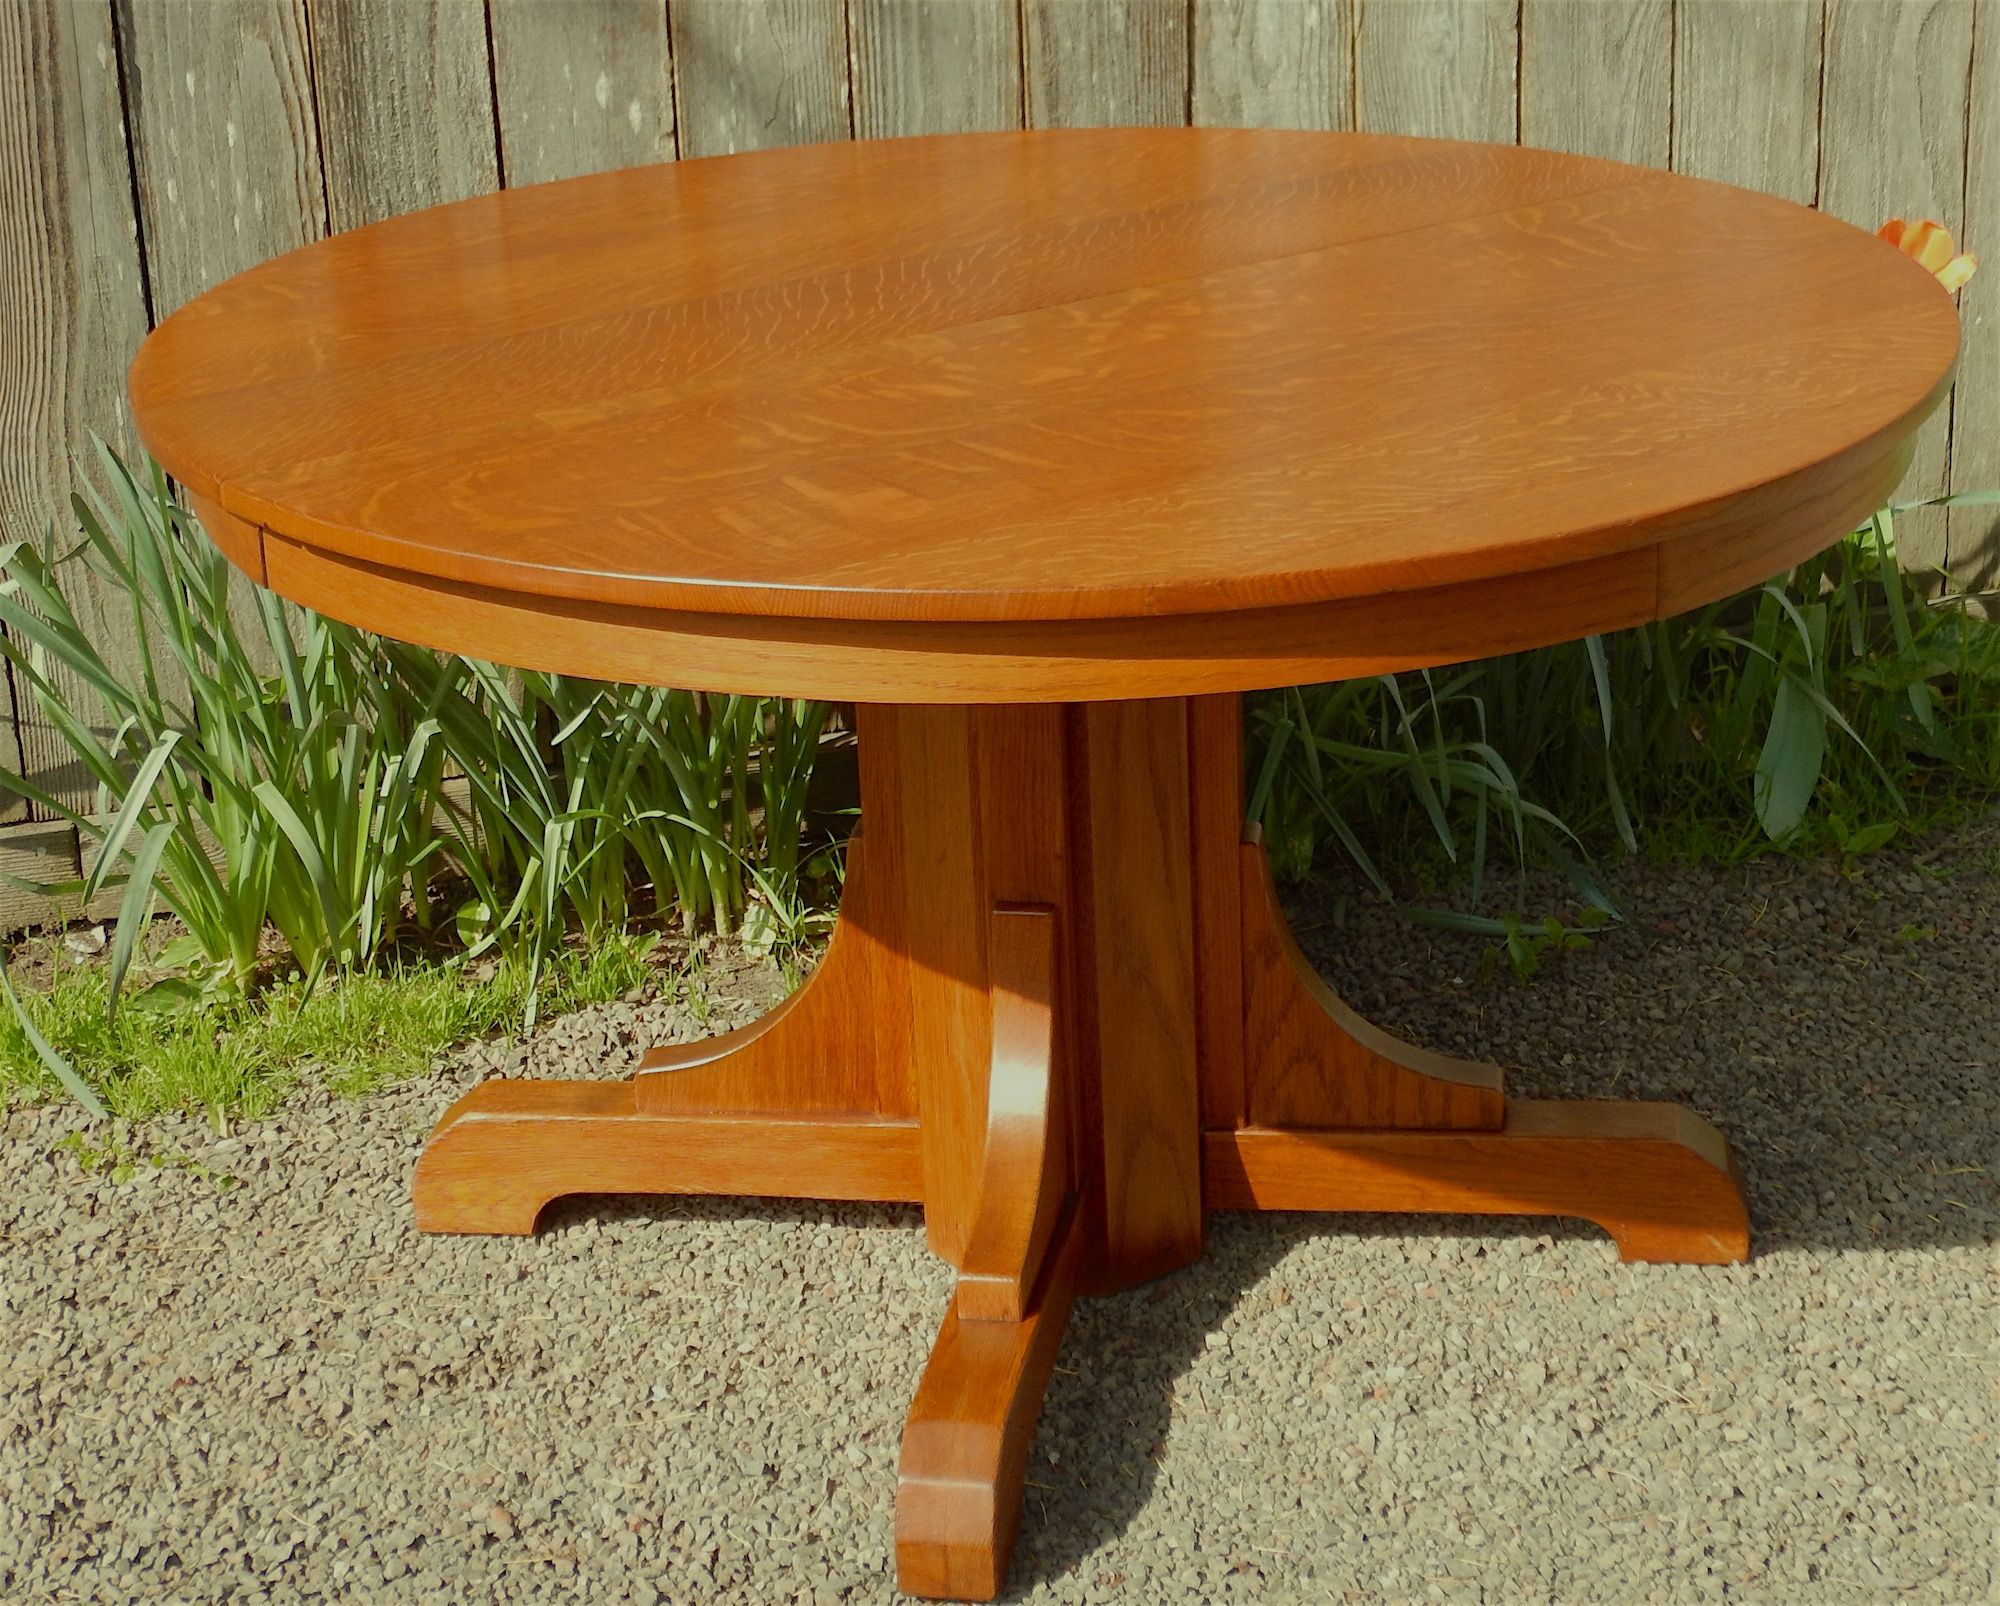 Gustav Stickley Round Dining Table